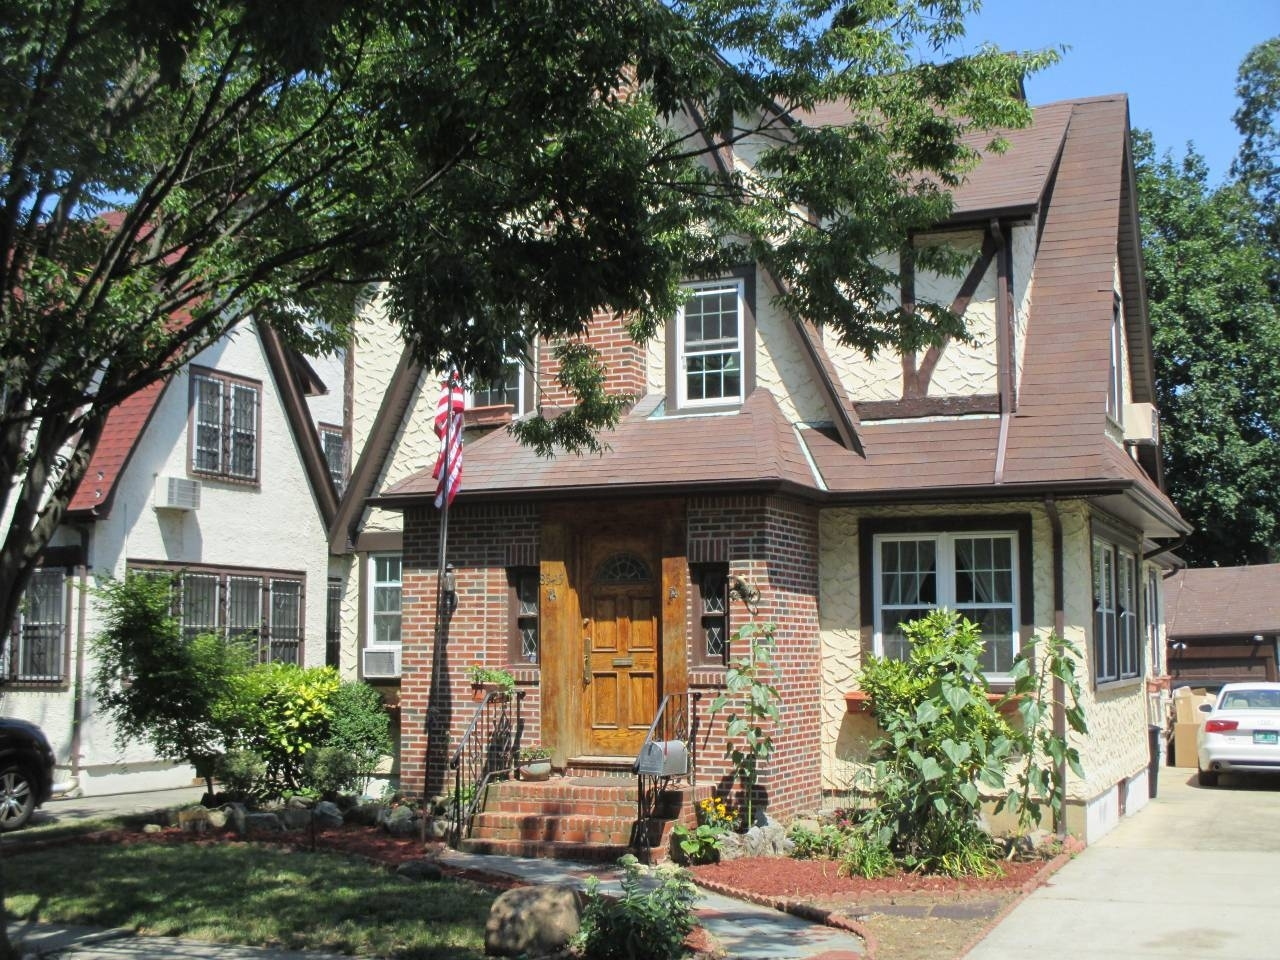 Need a vacation? Trump's early childhood home is available on Airbnb